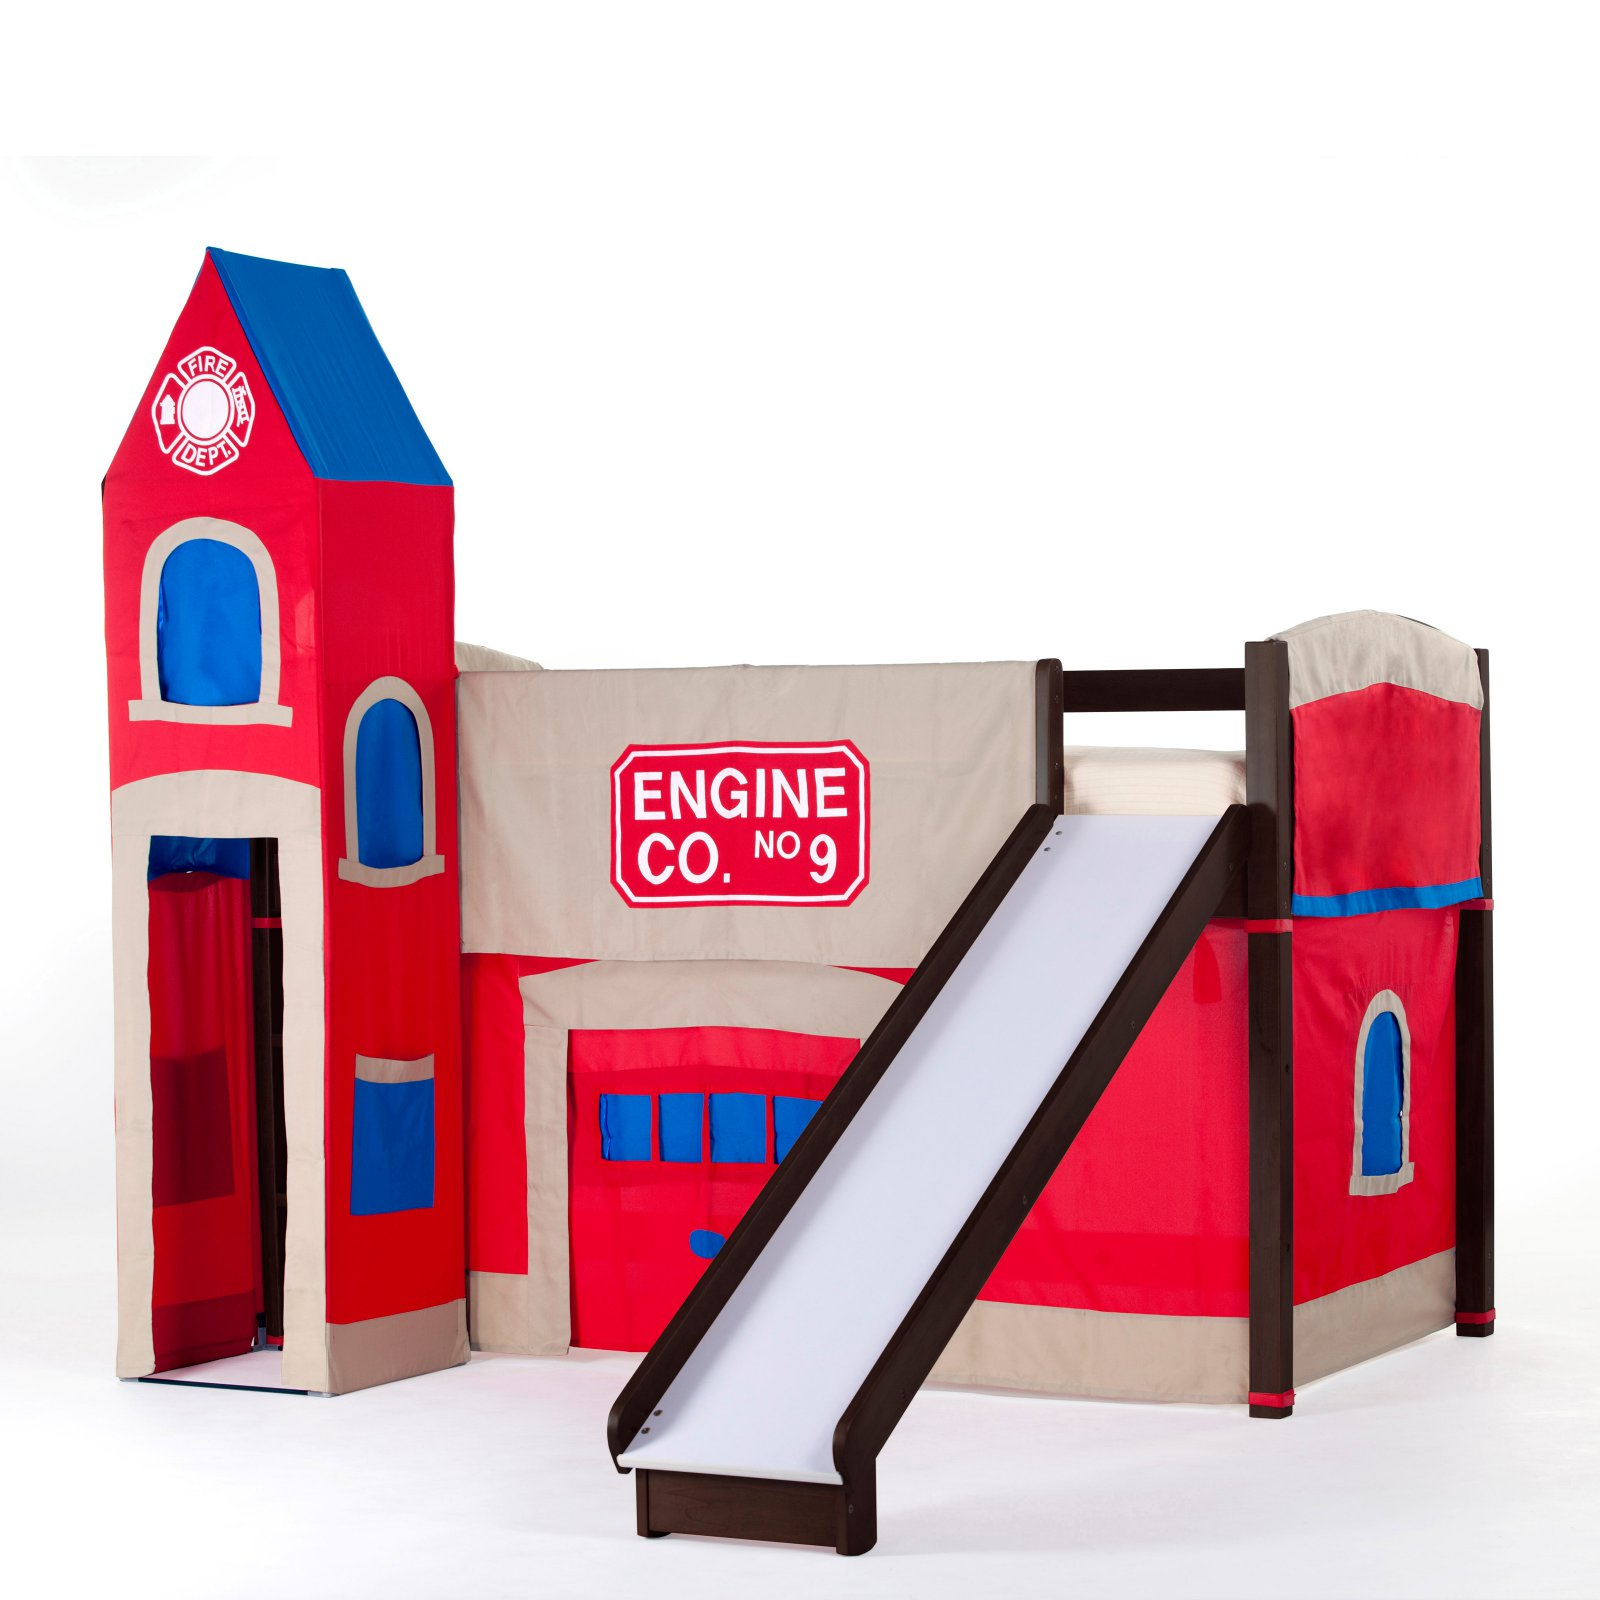 Hillsdale School House Junior Loft Bed With Slide And Firehouse Tent, Chocolate